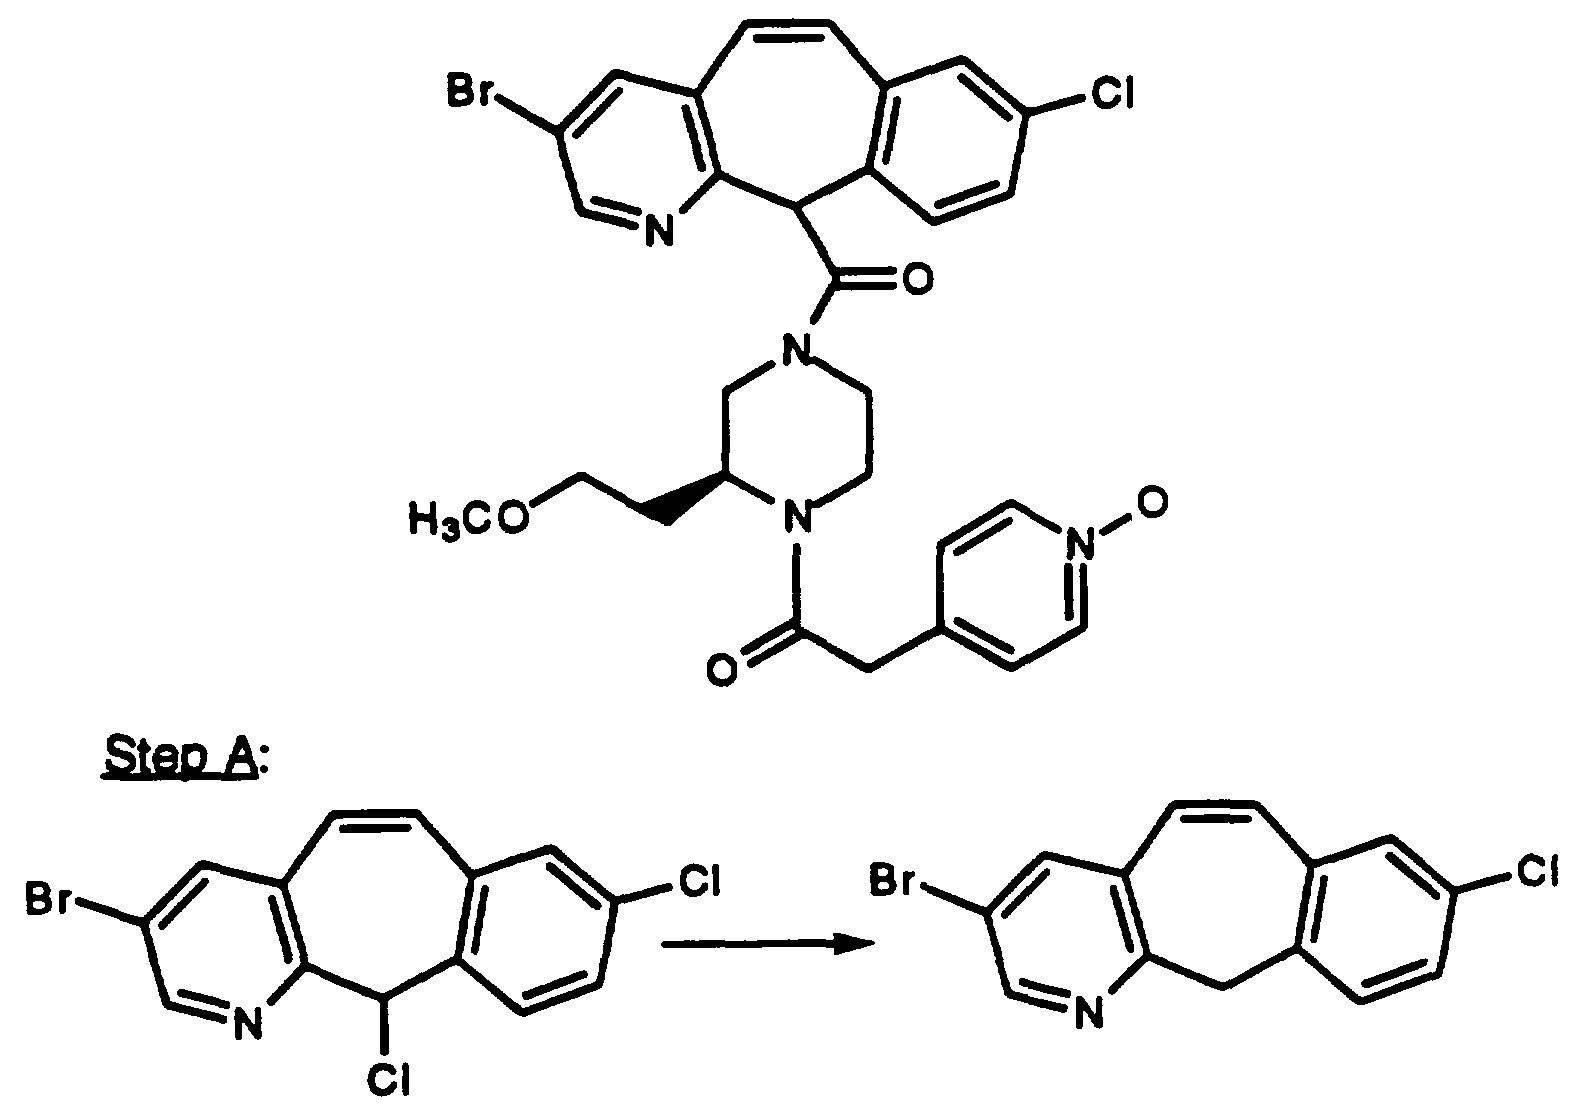 inhibition effectiveness of au compounds Mechanism of inhibition of human neutrophil collagenase hnc and on their inhibition by these au(1) compounds au(1) compounds and the effects of both.